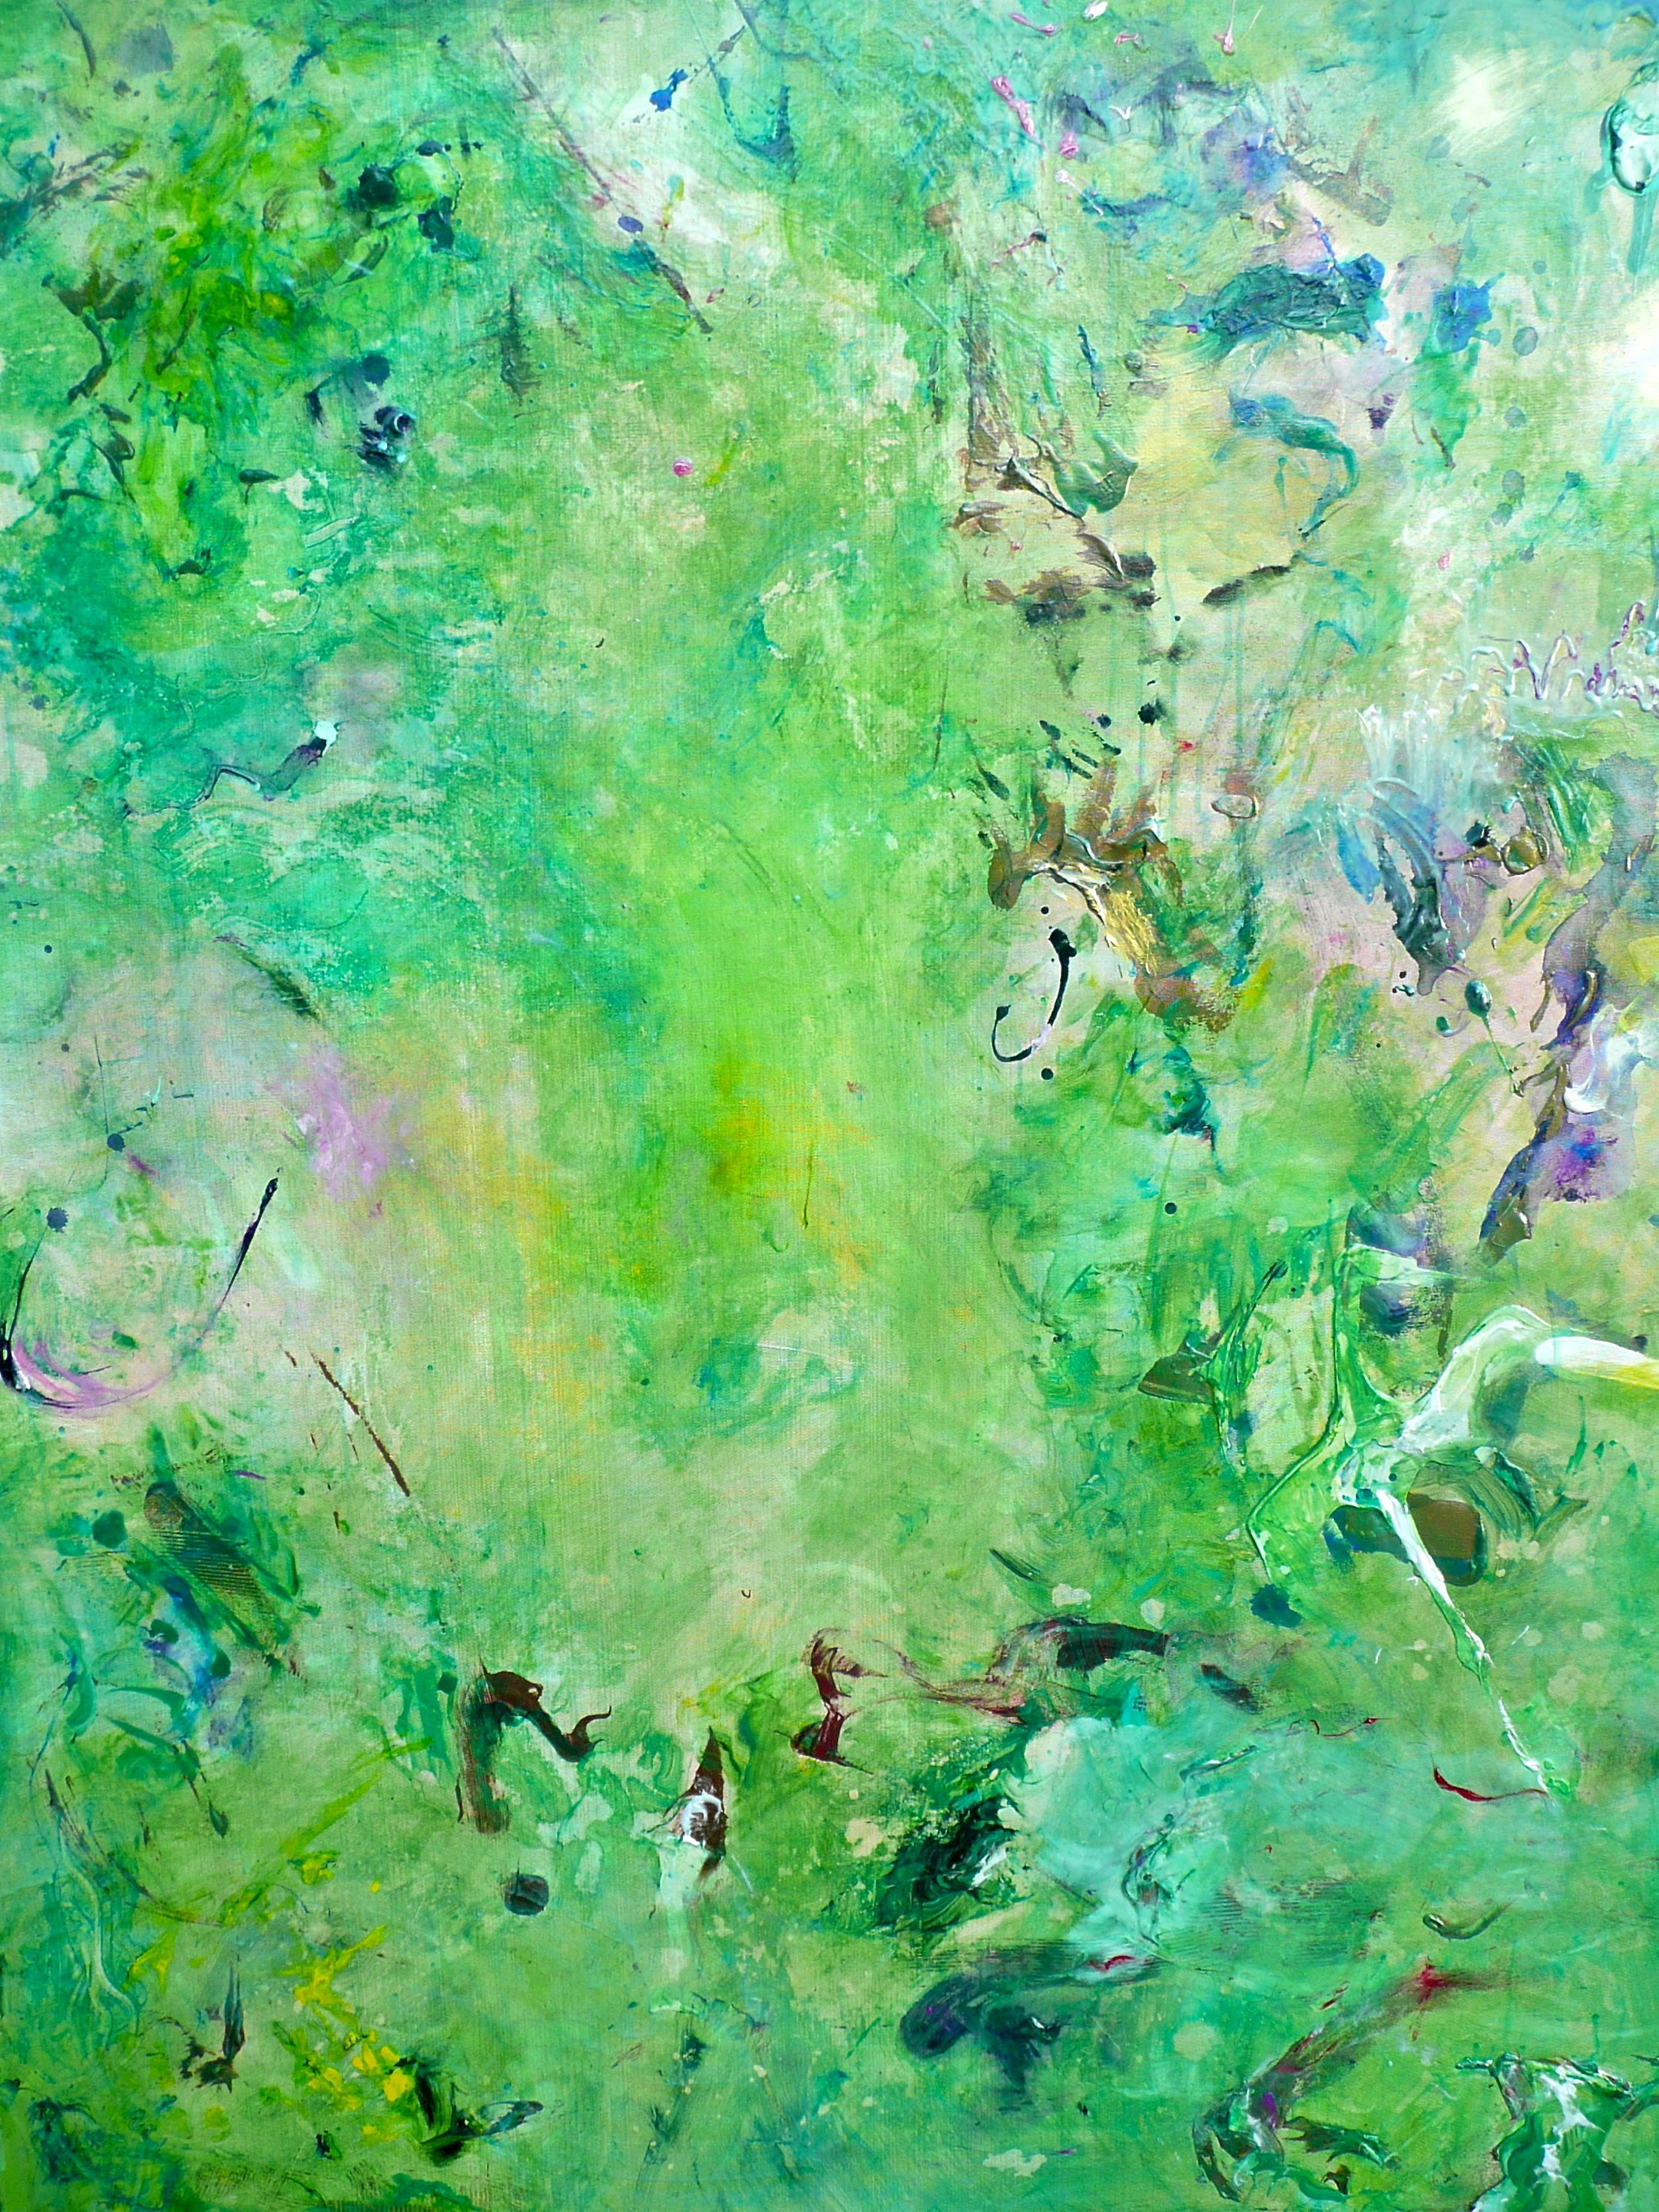 """""""green dream""""   48"""" x 72"""" acrylic on canvas (one of a triptych)   - sold"""